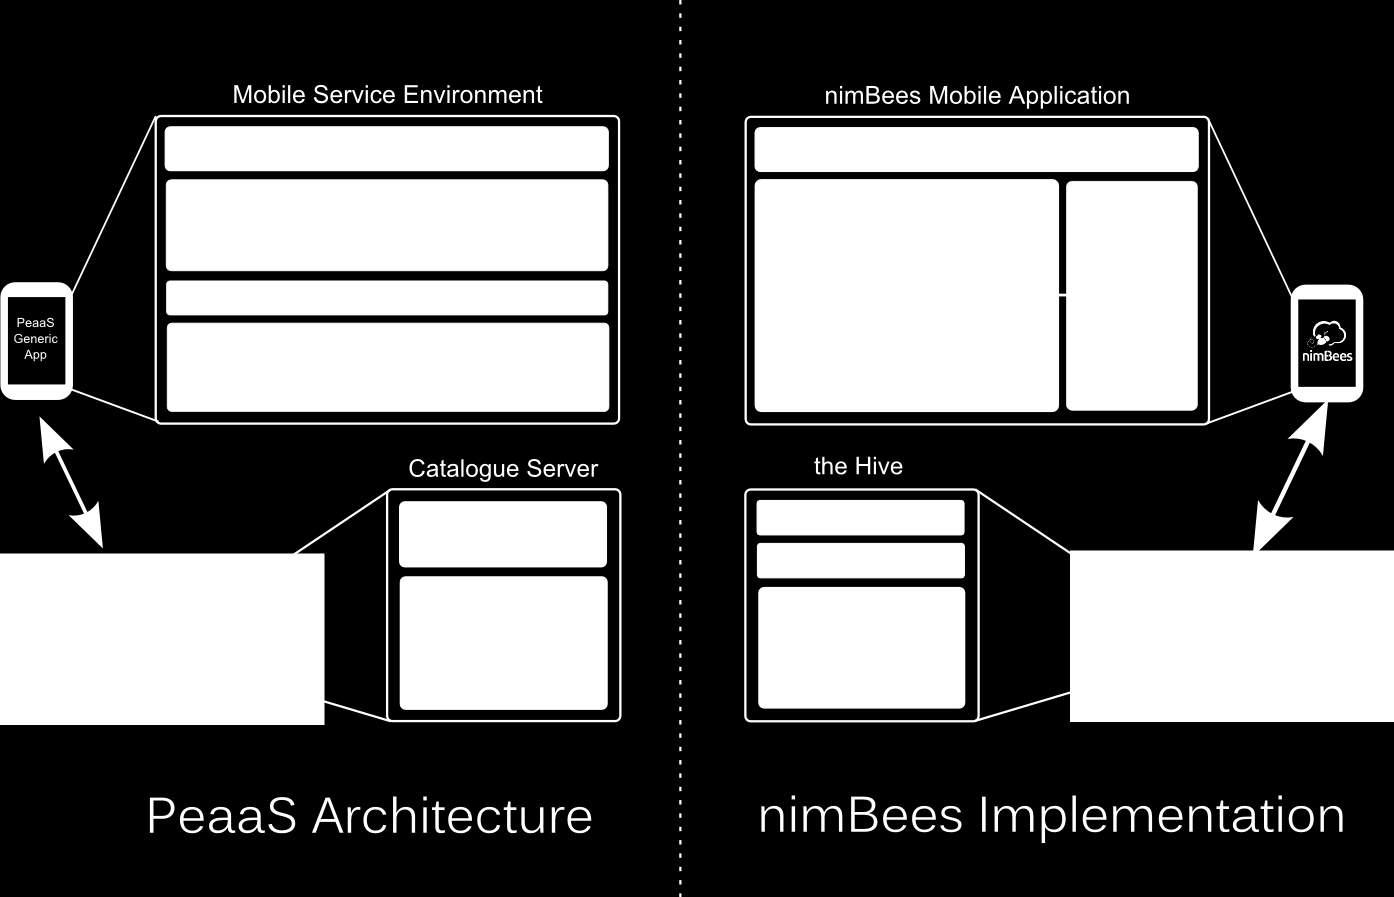 J. Miranda, J. Guillén, J.J. Berrocal, J.M. García, J.M. Murillo, C. Canal 61 Fig. 5. nimbees R implementation of PeaaS architecture.